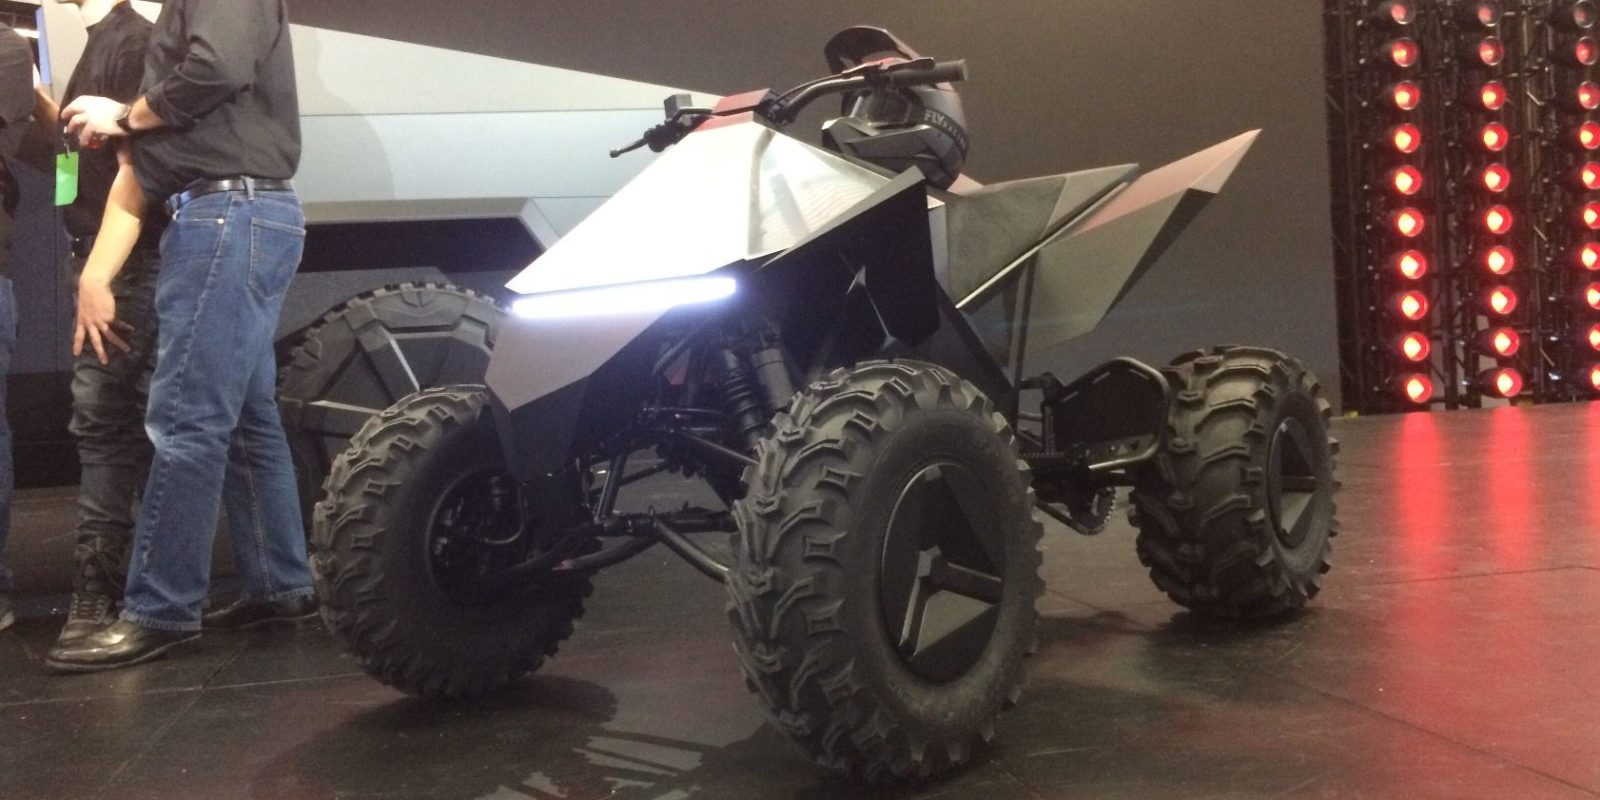 Tesla to launch Cyberquad electric ATV in late 2021, hints at possible dirt bike